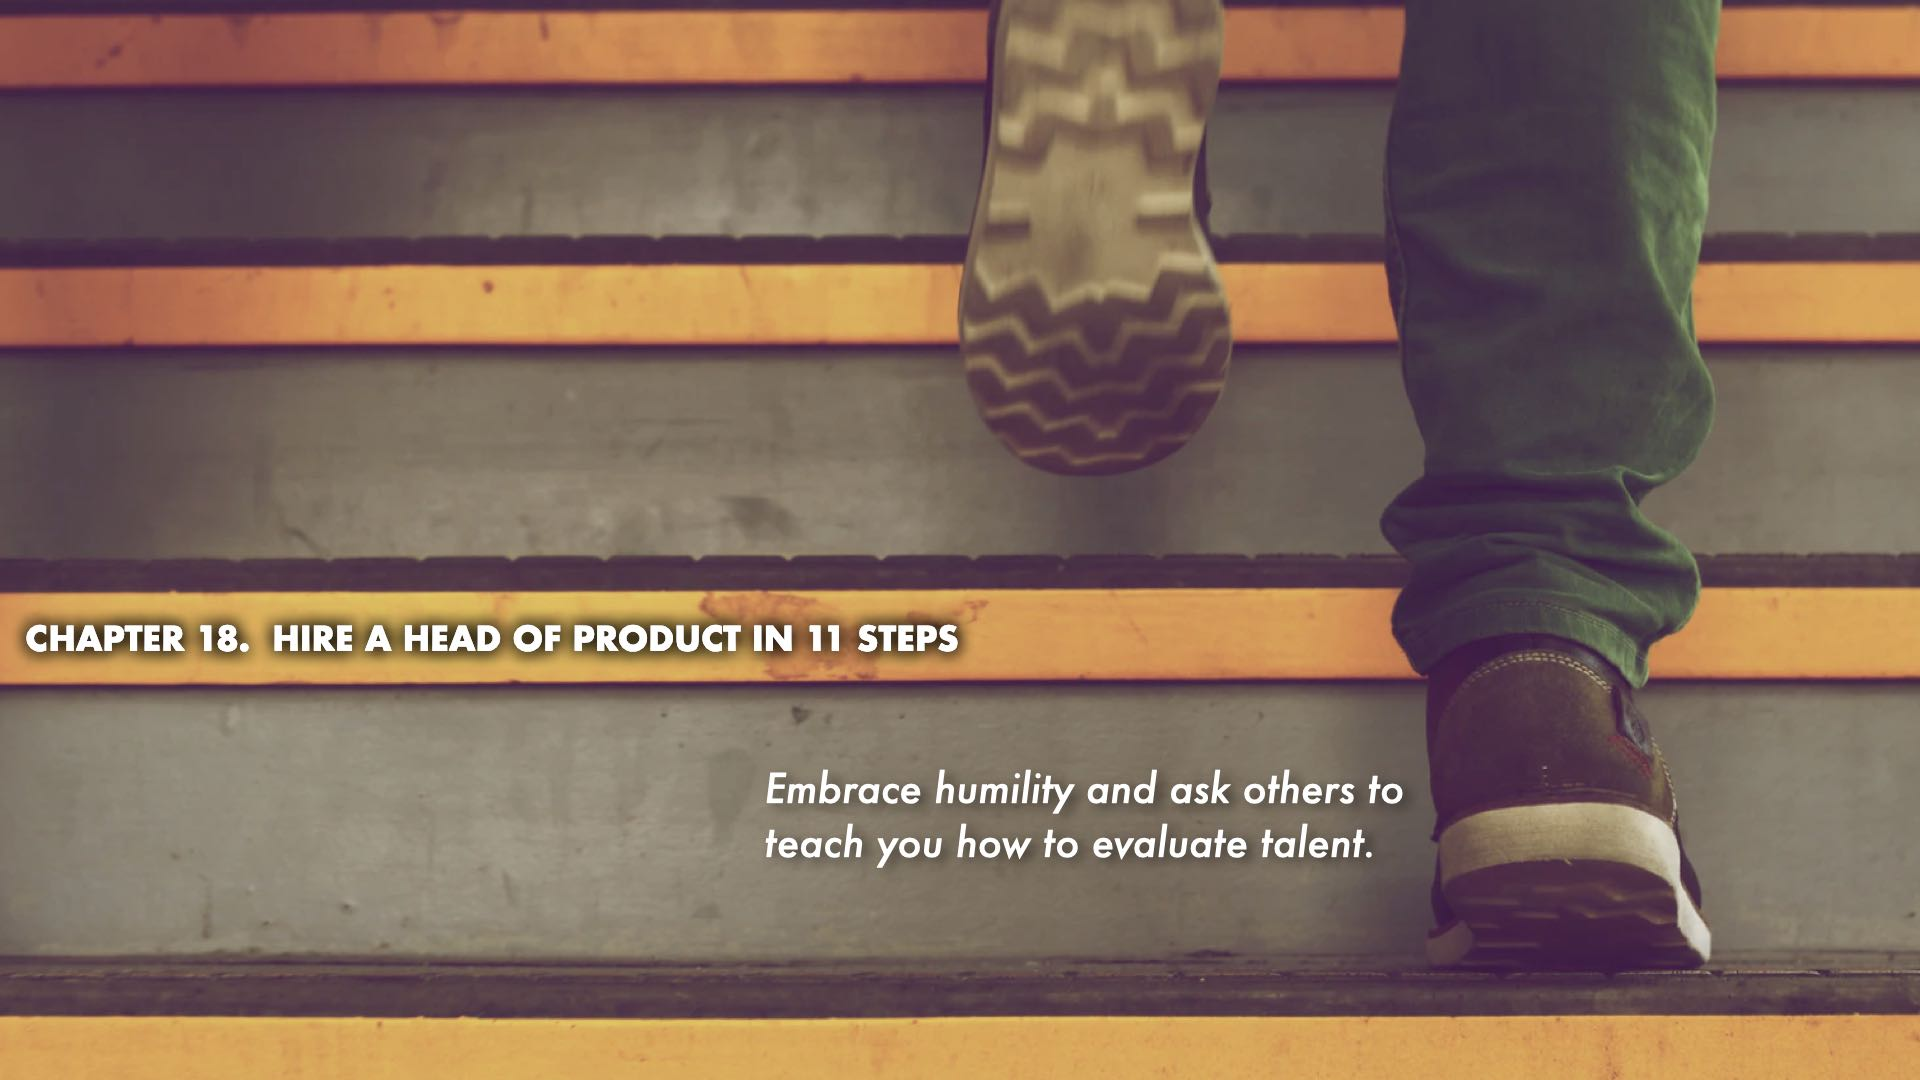 Hire a Head of Product in 11 Steps